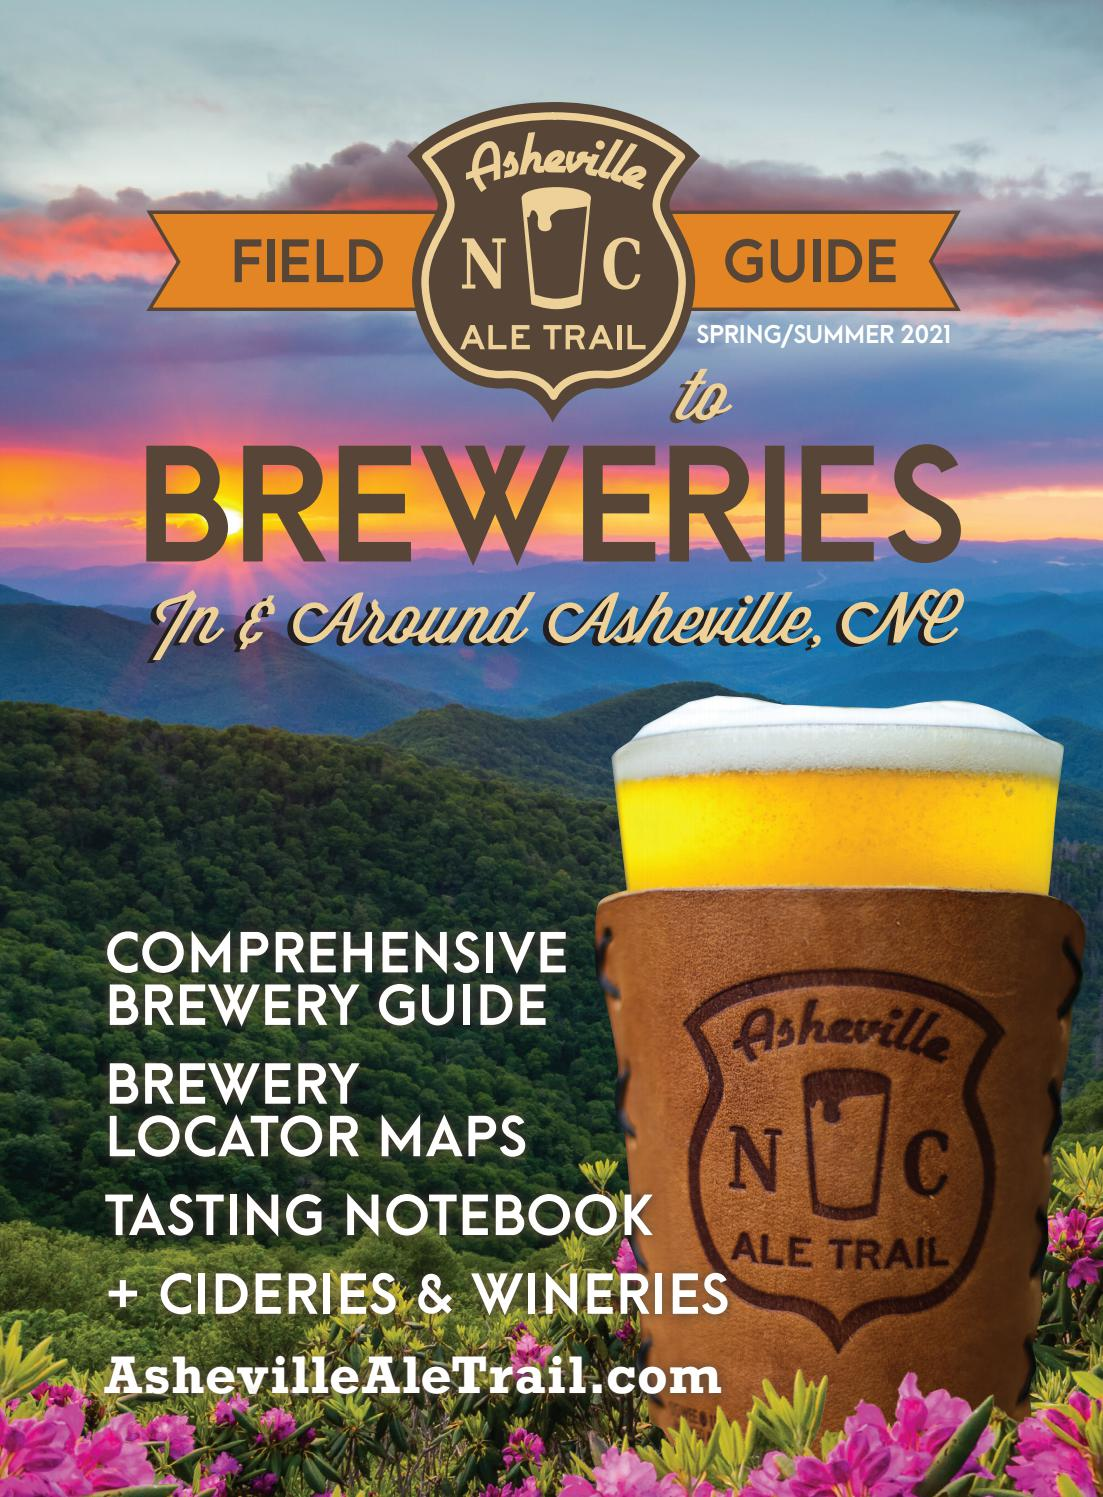 Asheville Breweries Open On Christmas Day 2021 Asheville Ale Trail Spring Summer 2021 By Hulsey Media Issuu